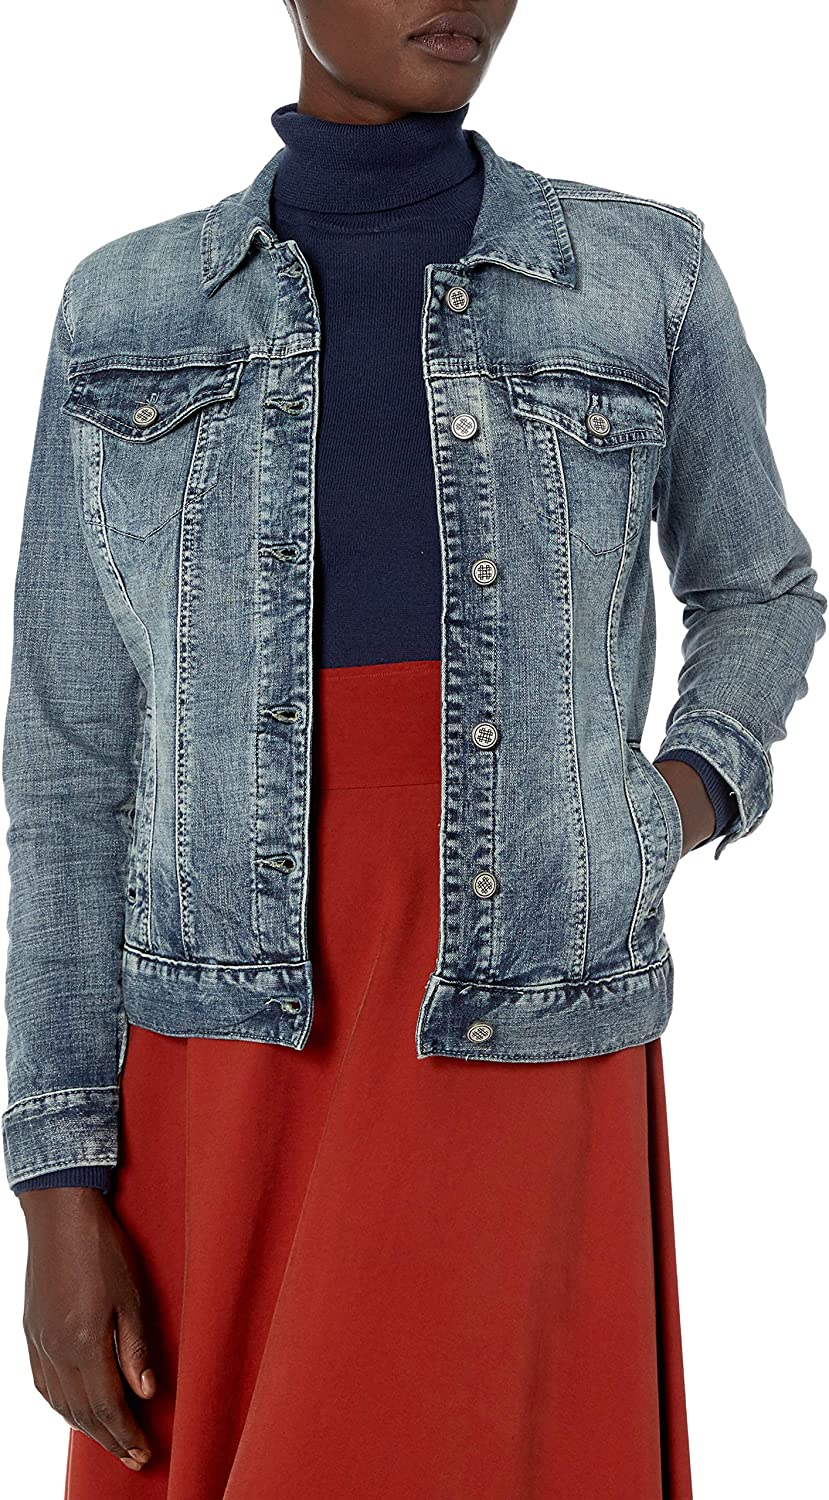 Colorado Springs Mall Laurie Felt Women's Classic Denim NEW before selling Jacket